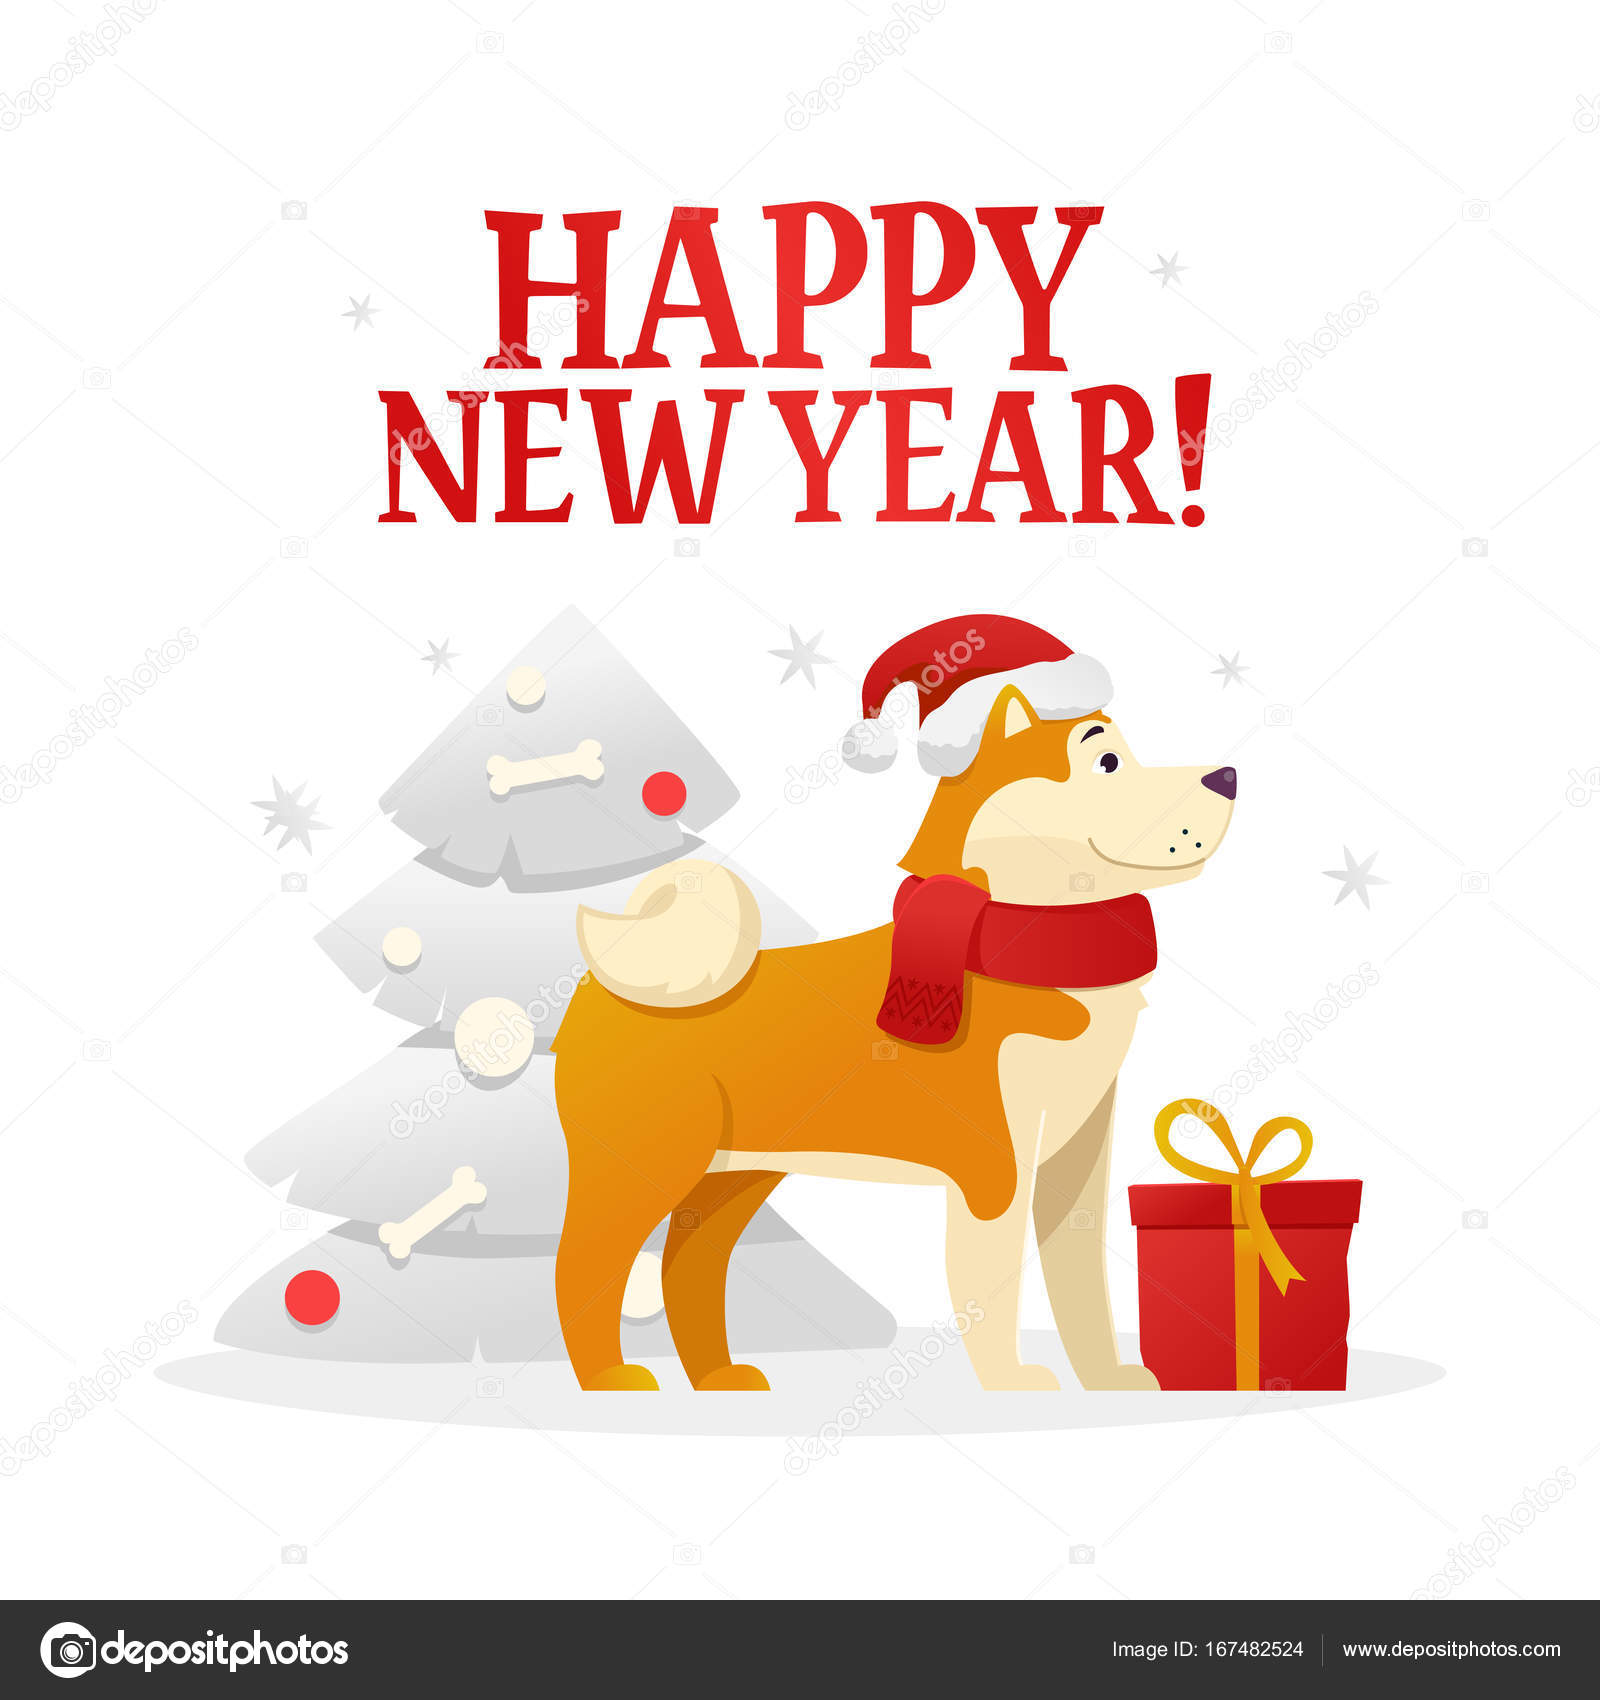 happy new year postcard template with the cute yellow dog with the red gift near the